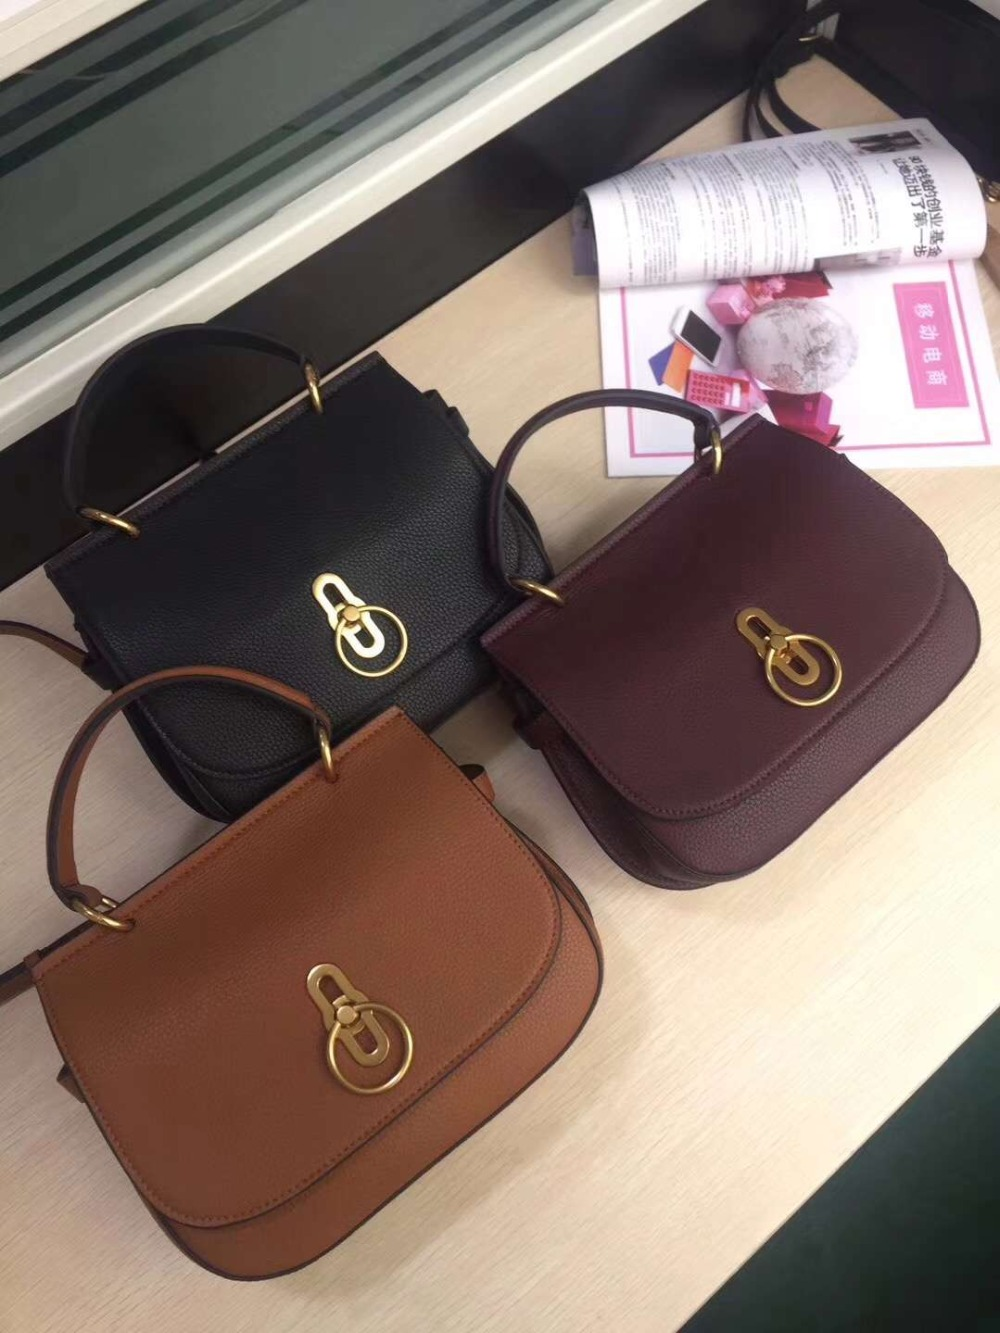 free shipping 2019 the new style magazine fashion round of saddle bag genuine leather handbag shoulder bag